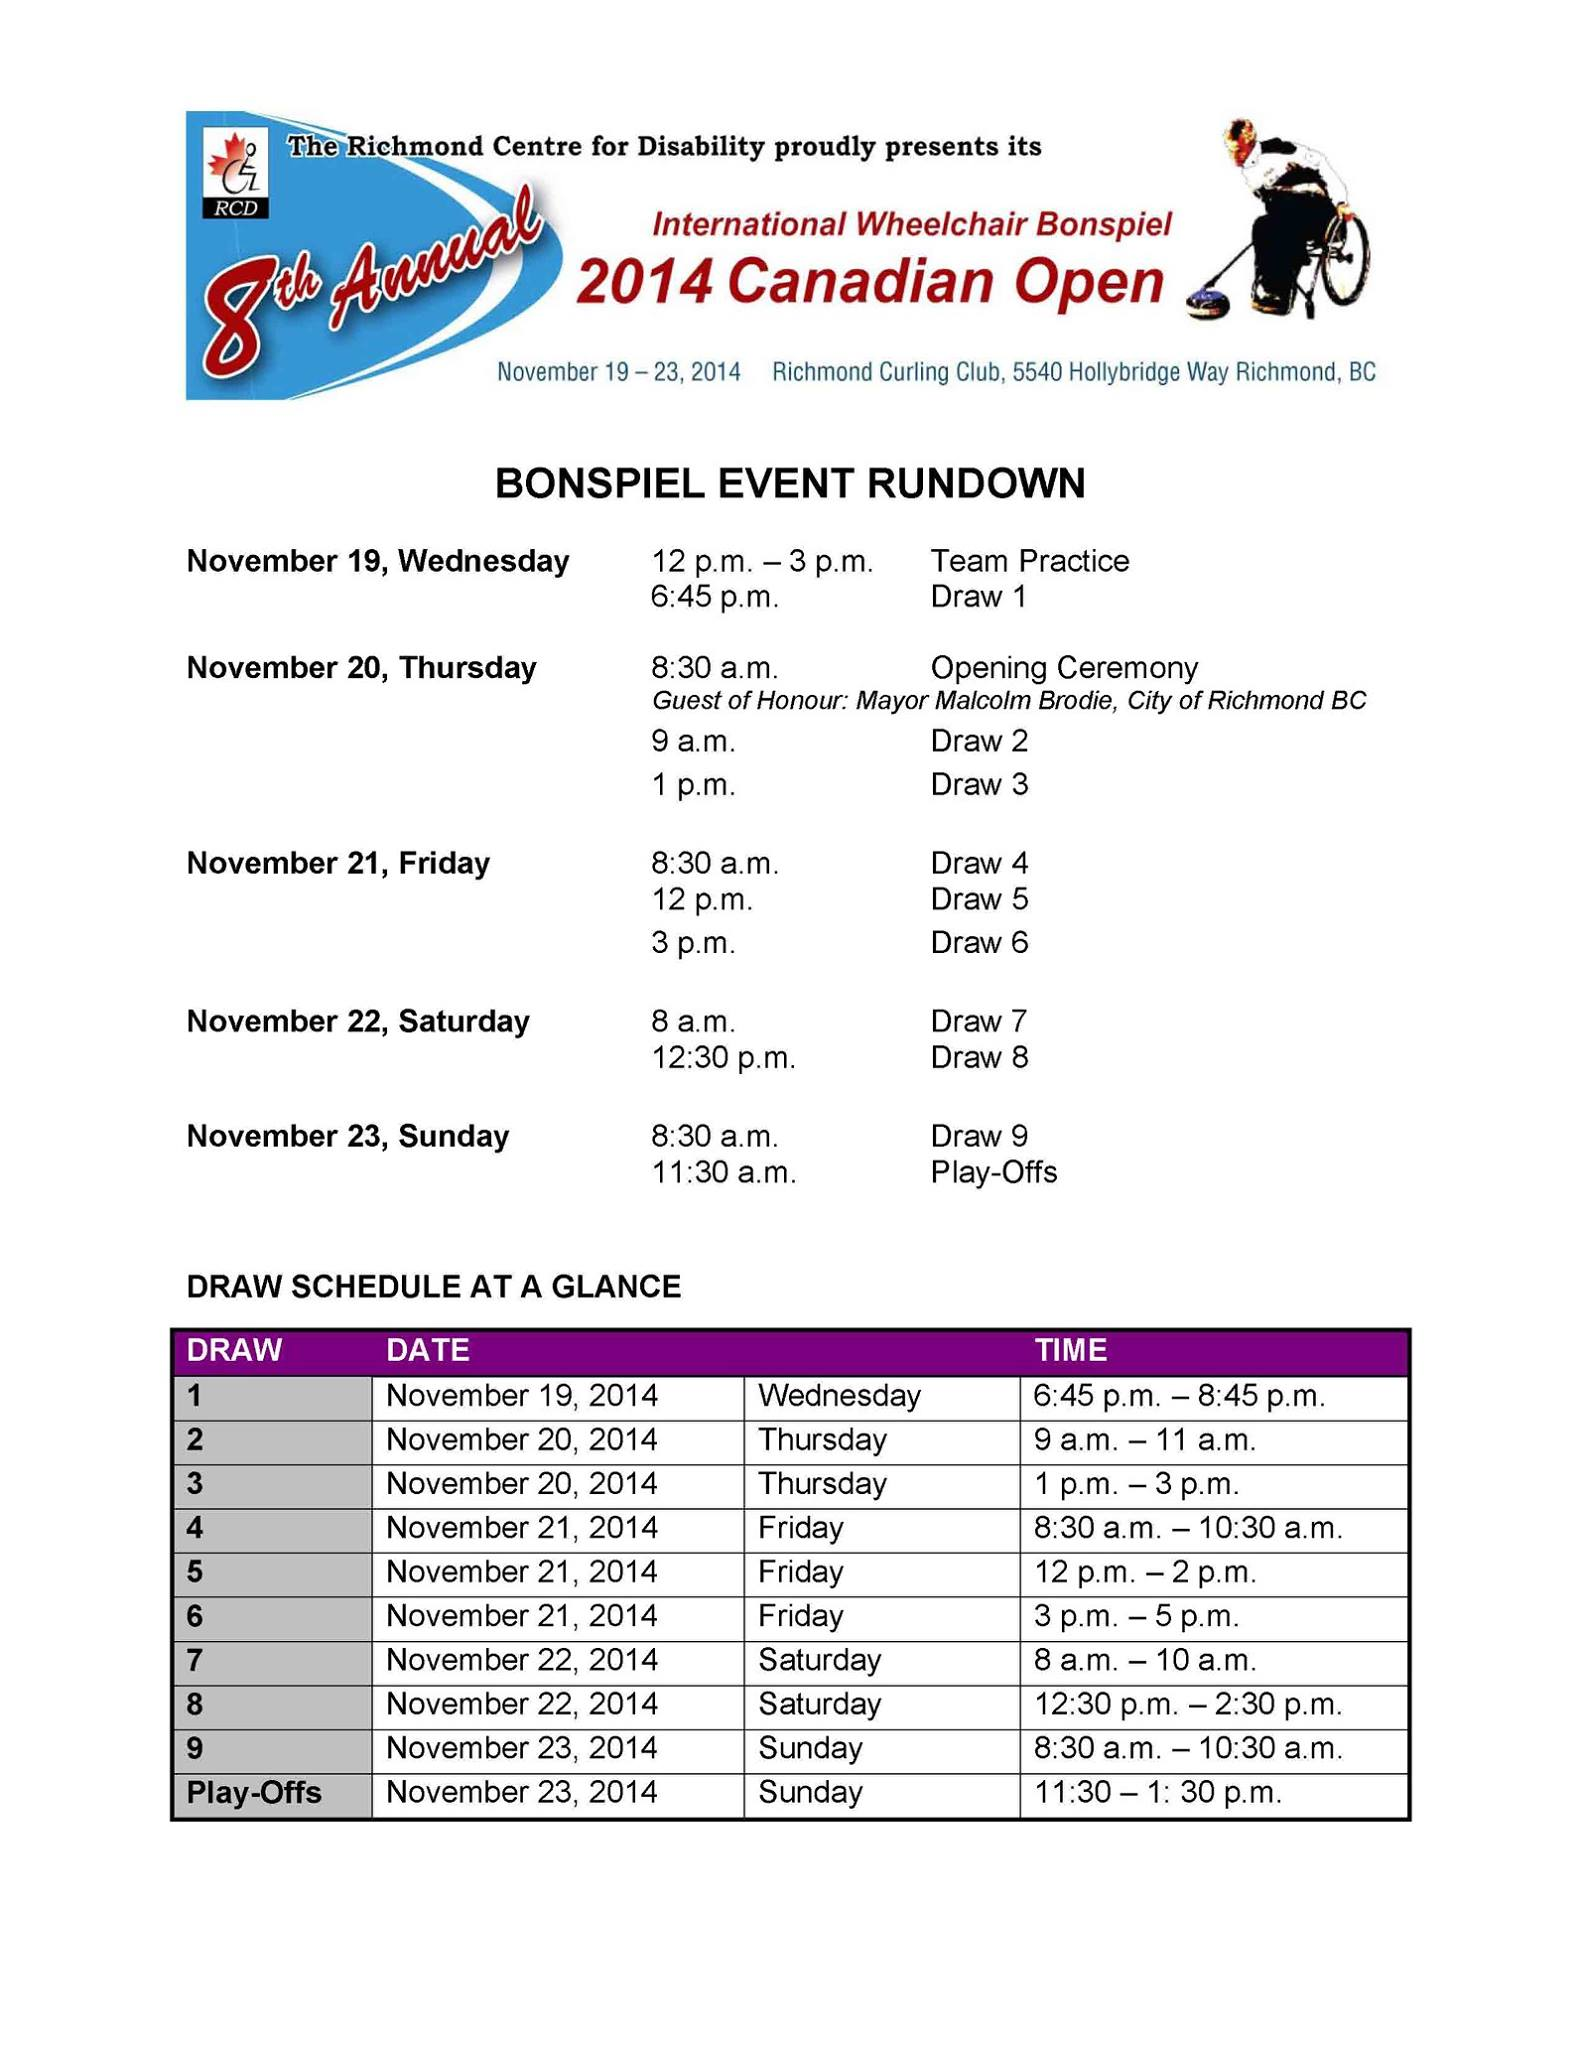 International Wheelchair Bonspiel 2104 Canadian Open schedule 1